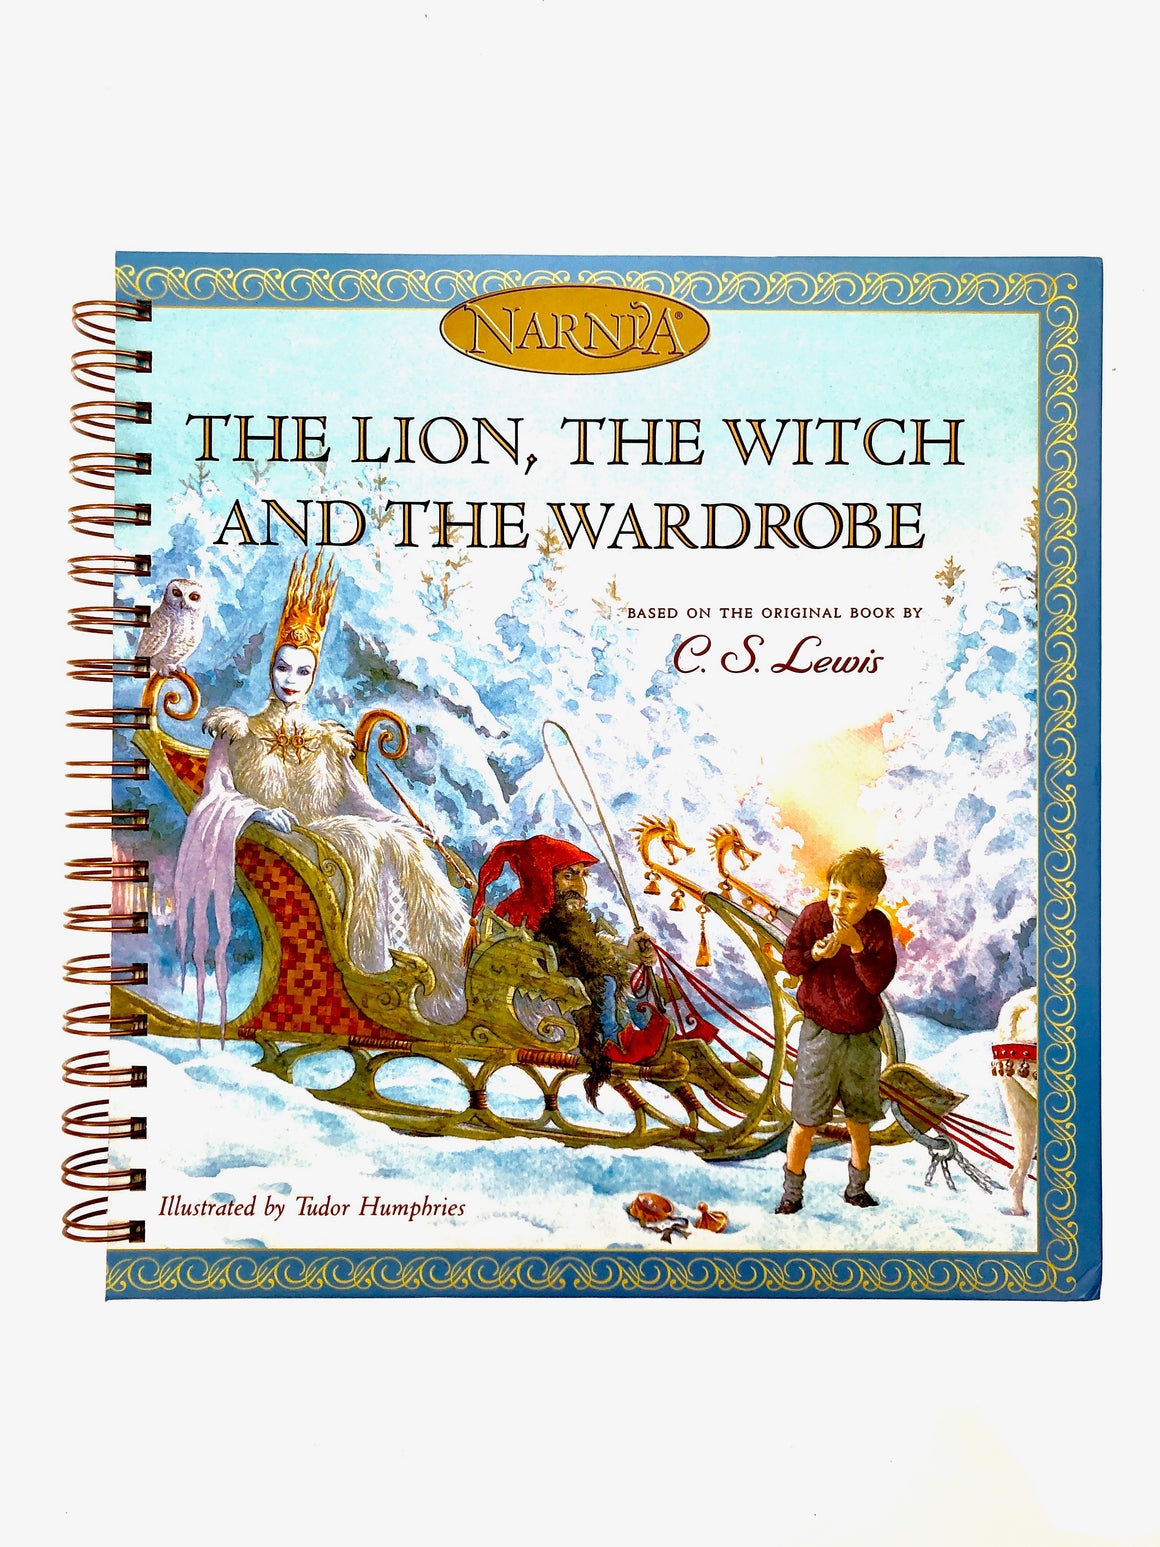 The Lion, the Witch, and the Wardrobe-Red Barn Collections